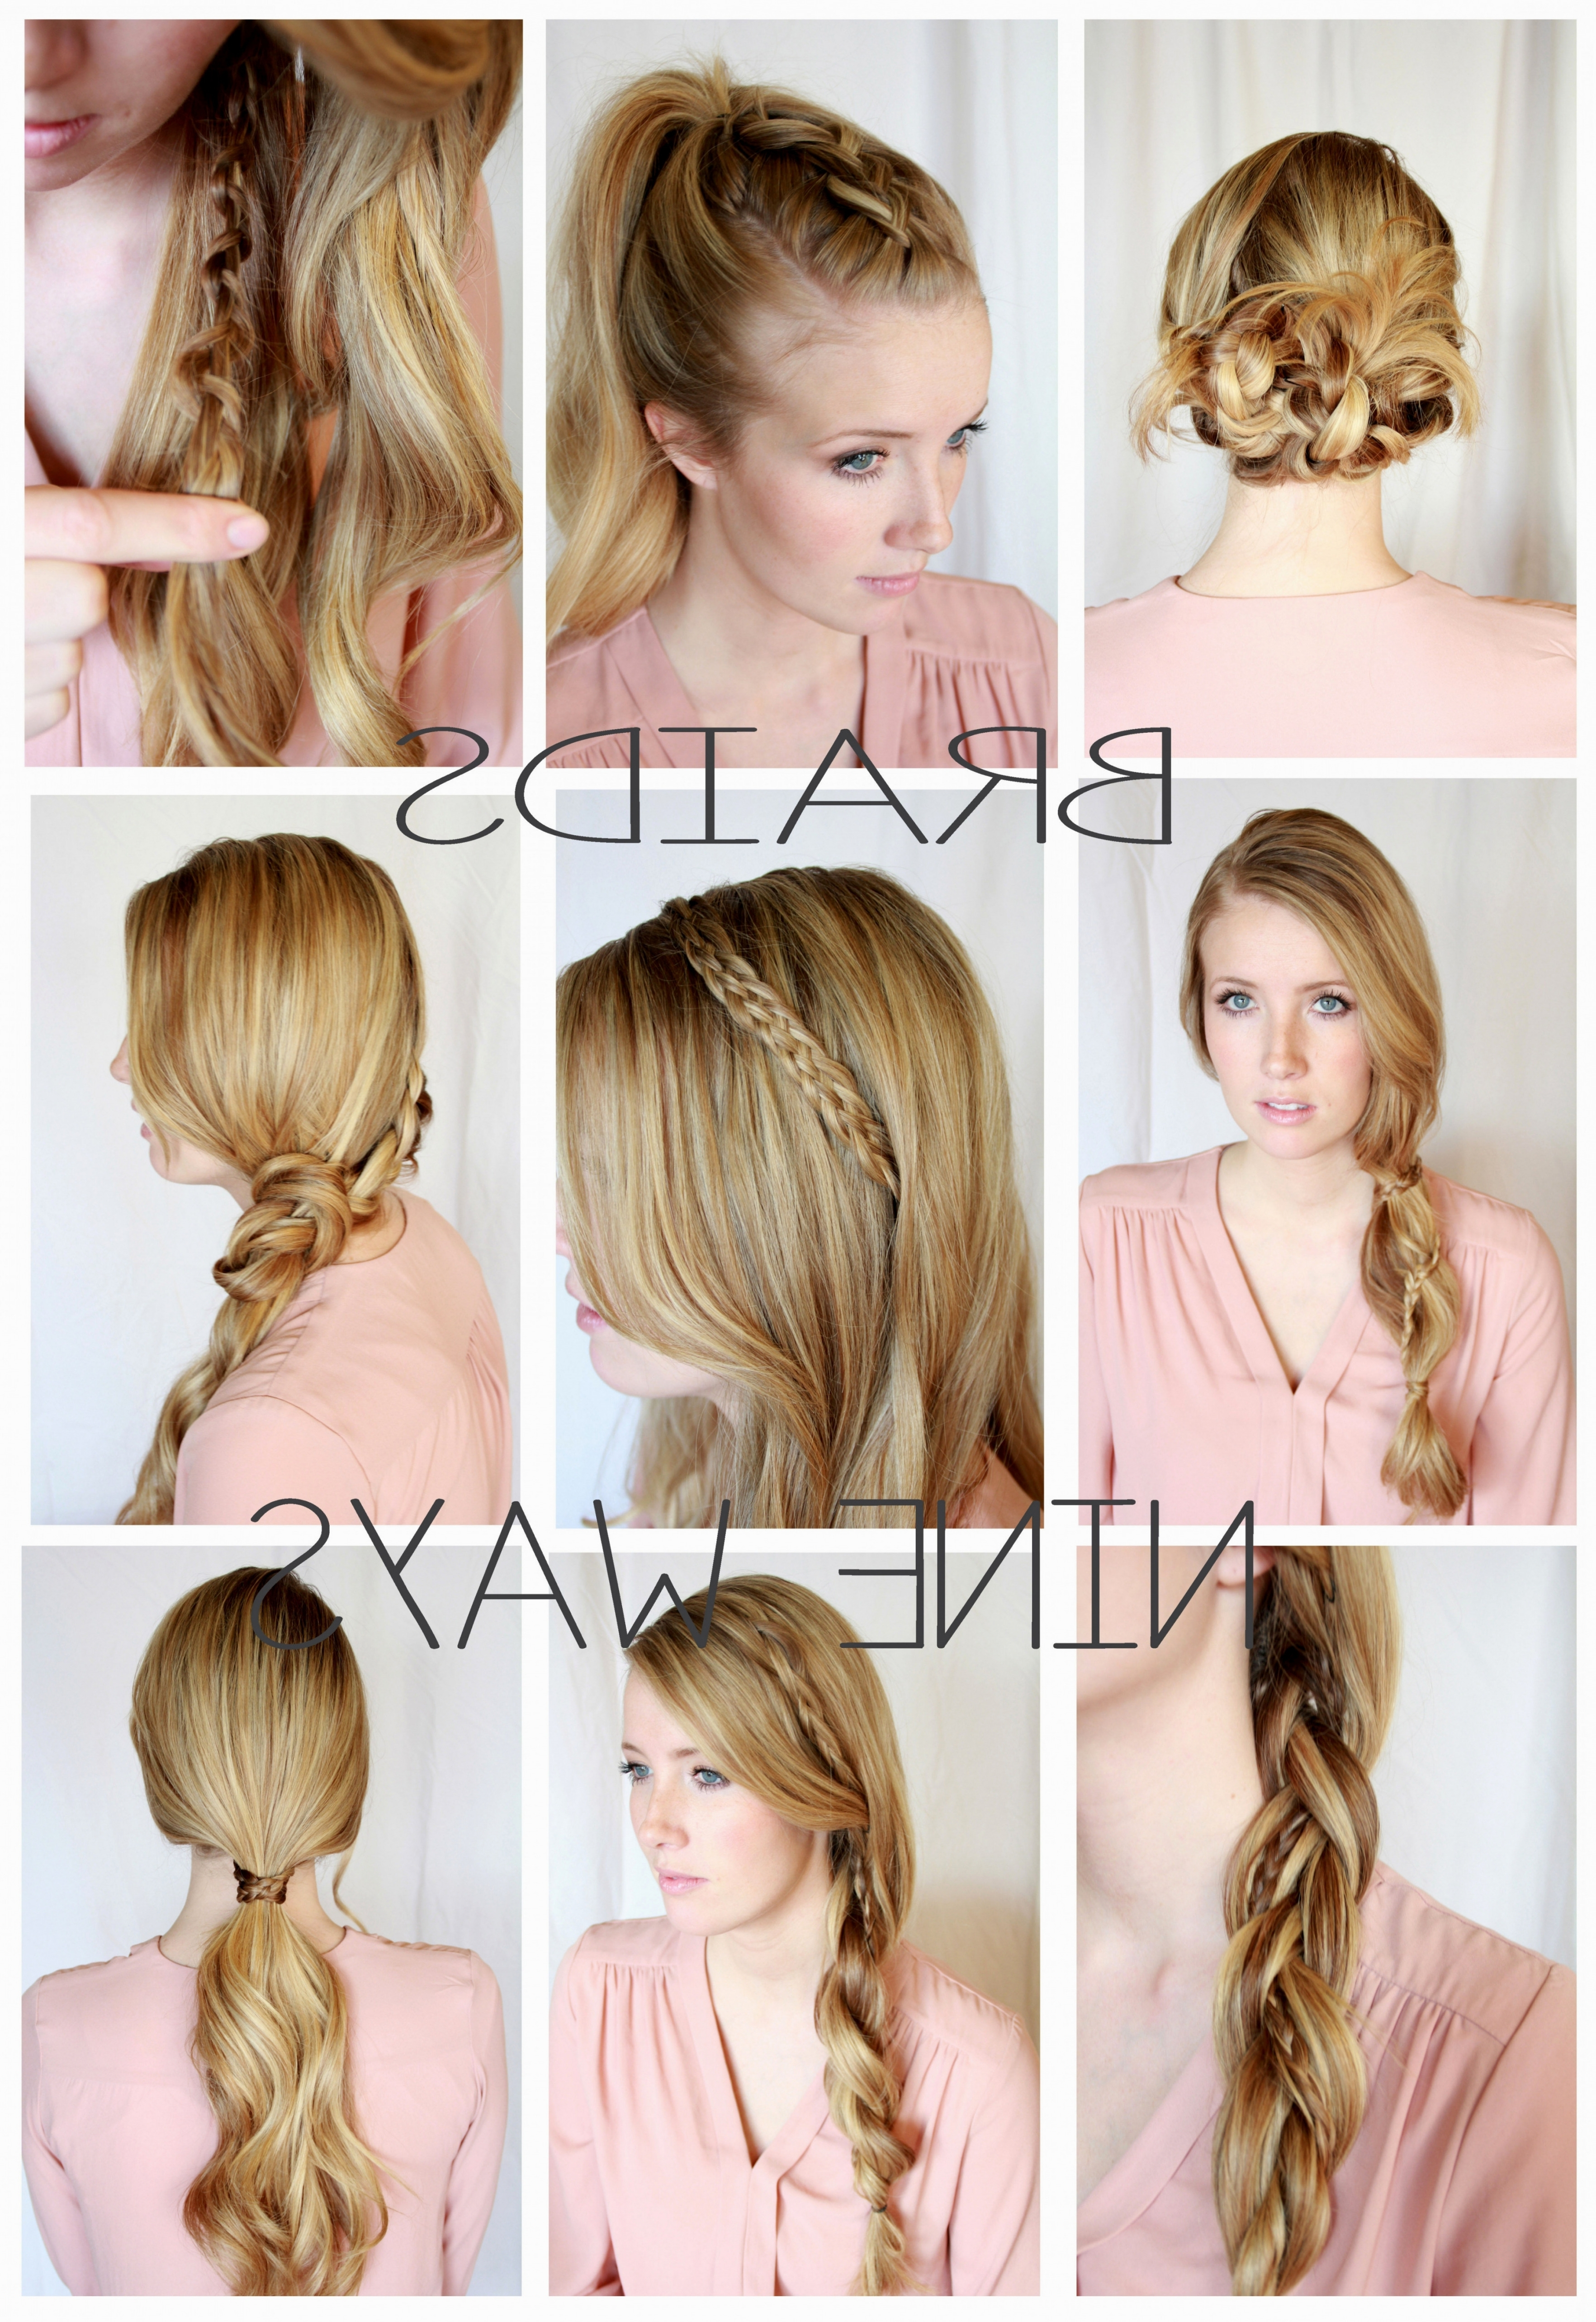 Well Known Cute Braided Hairstyles For Cute Easy Braided Hairstyles Collection Of Solutions Cute Braid (View 13 of 15)